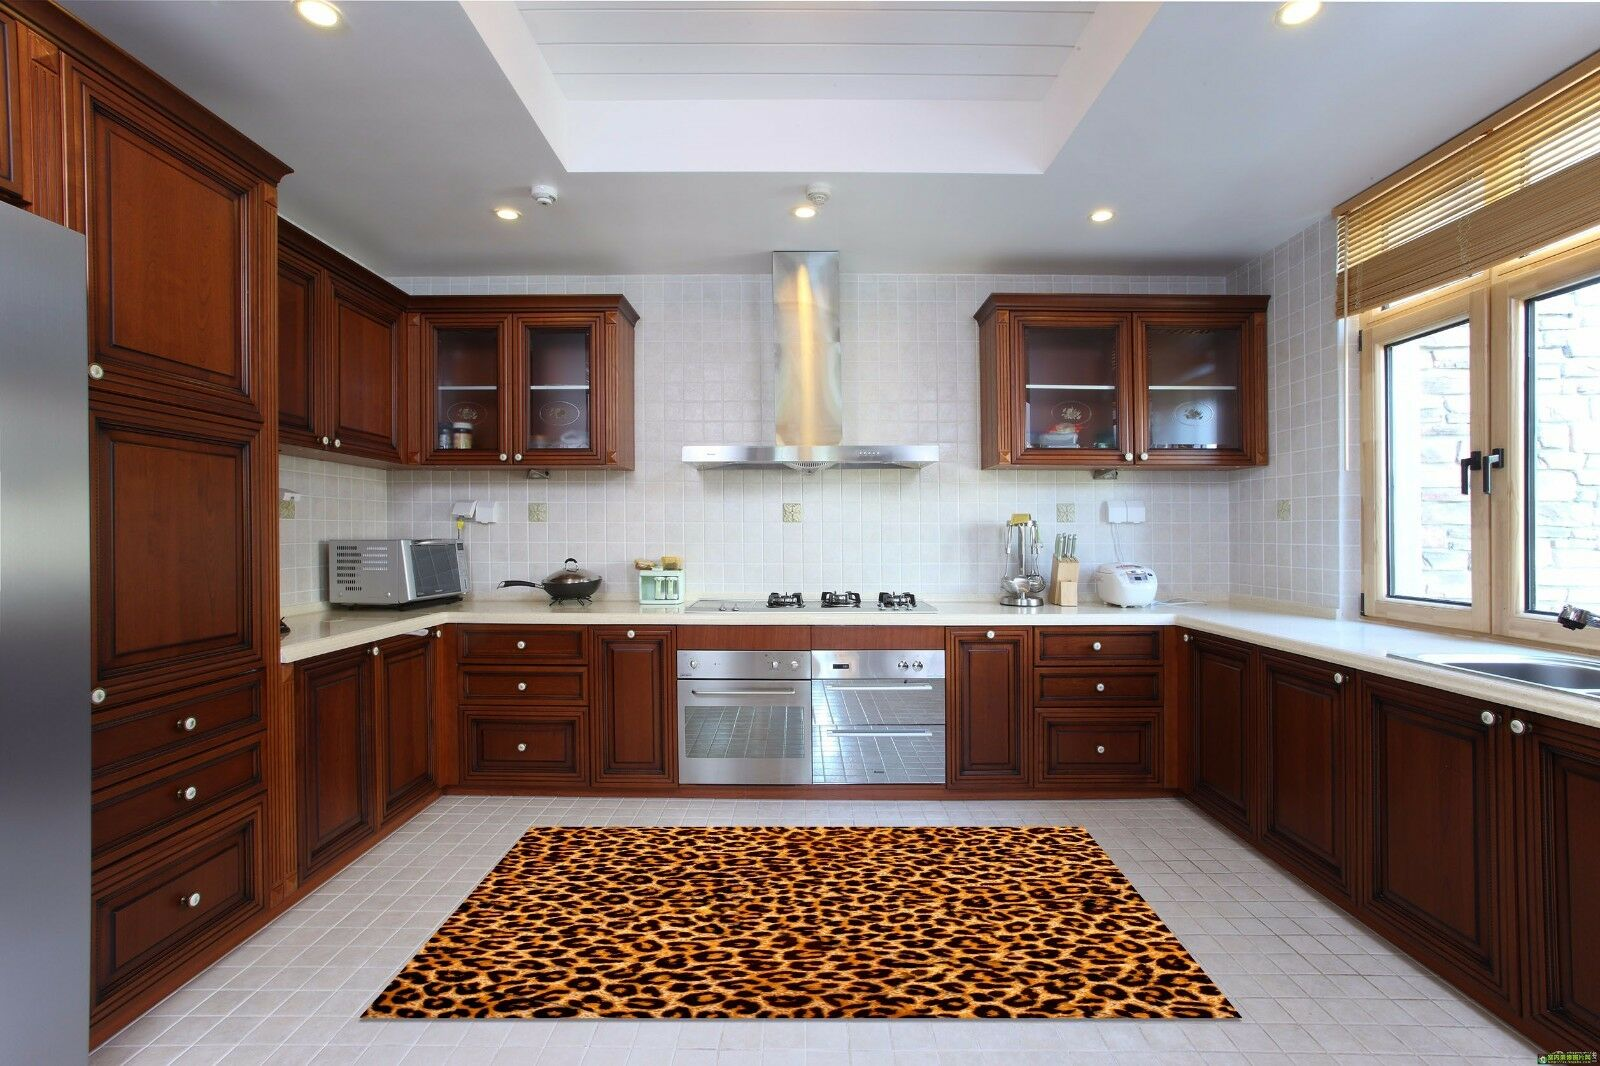 3D Leopard 772 Kitchen Mat Floor Murals Wall Print Wall AJ WALLPAPER AU Kyra